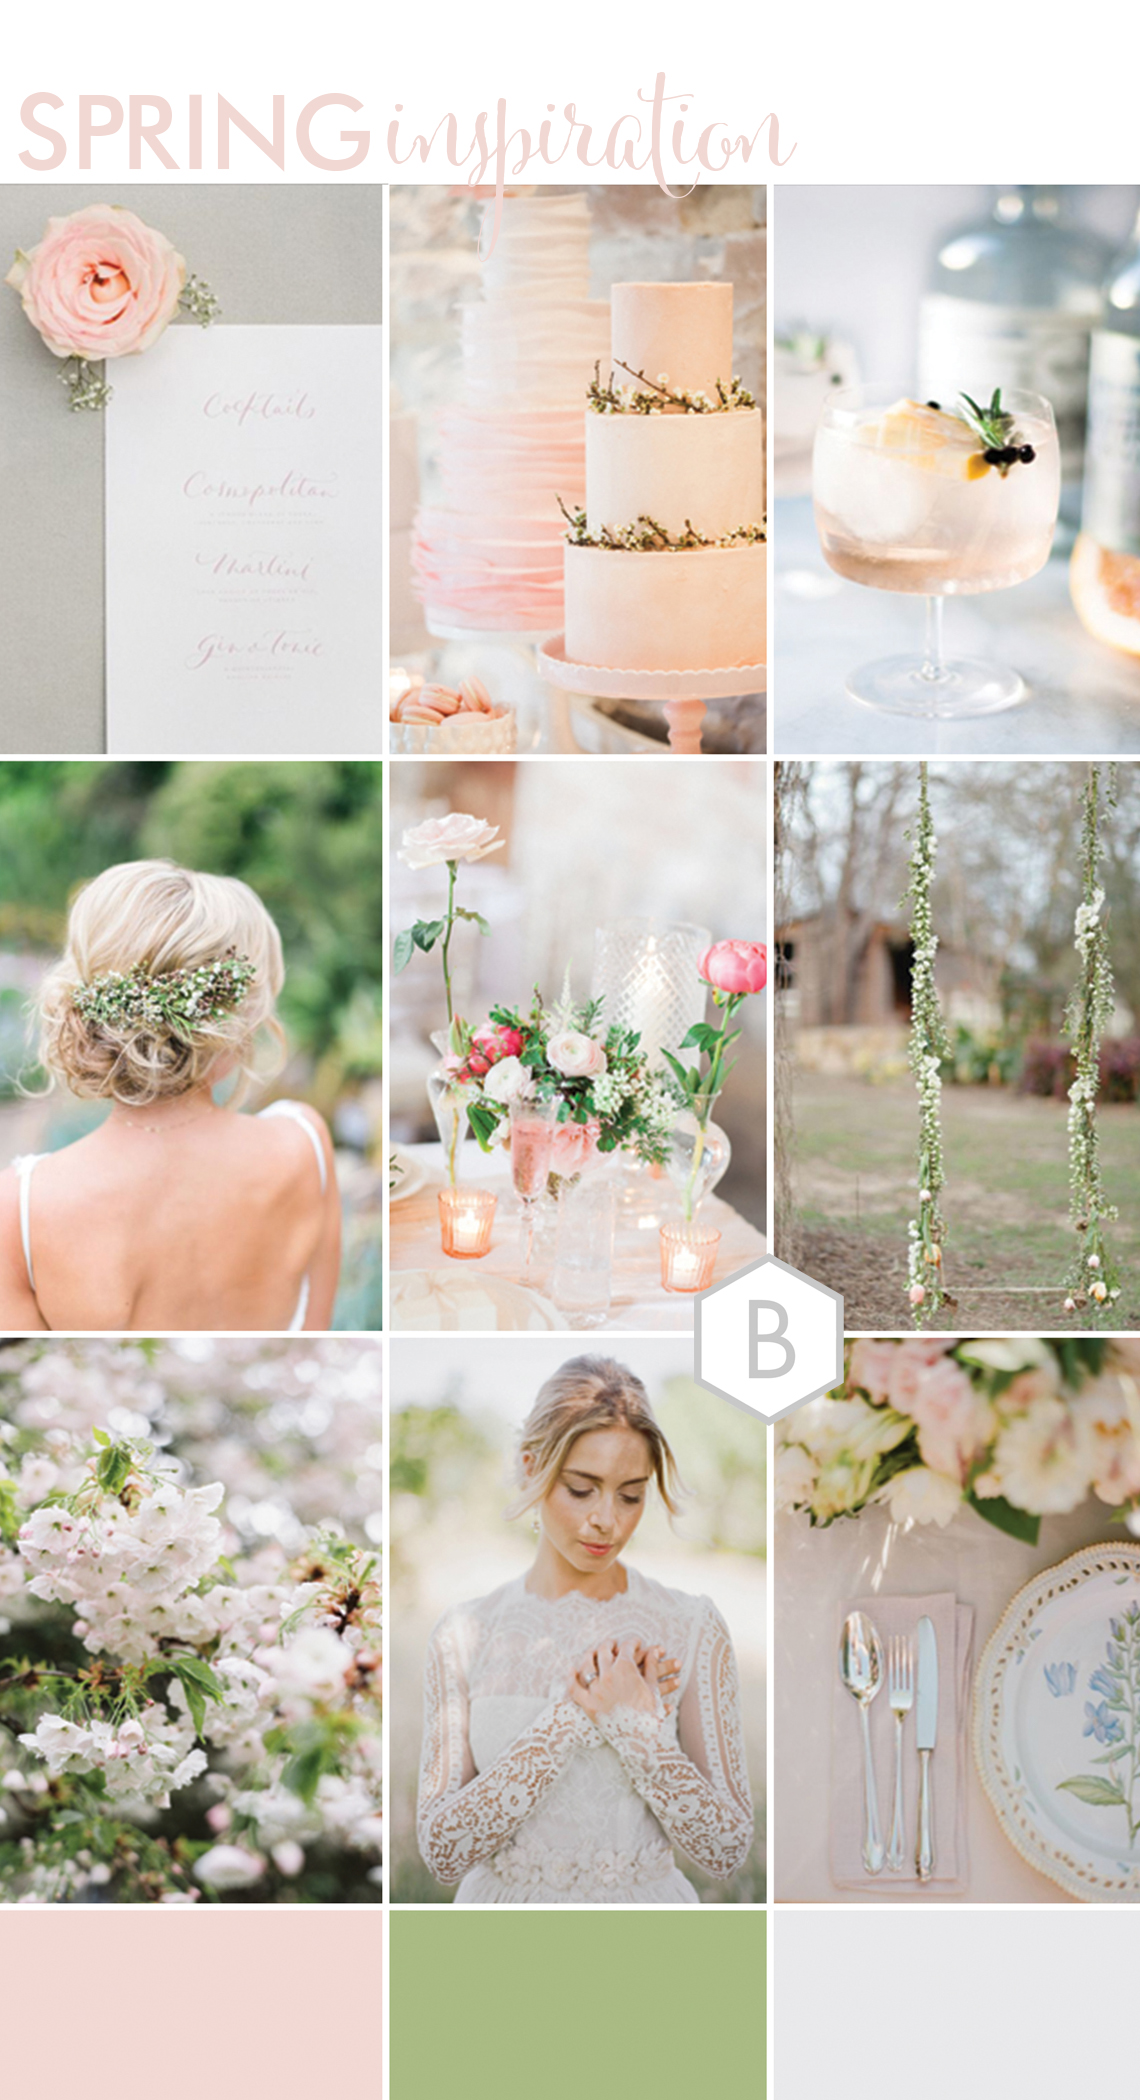 bloved-wedding-blog-spring-wedding-ideas-vanilla-rose-weddings-1.jpg